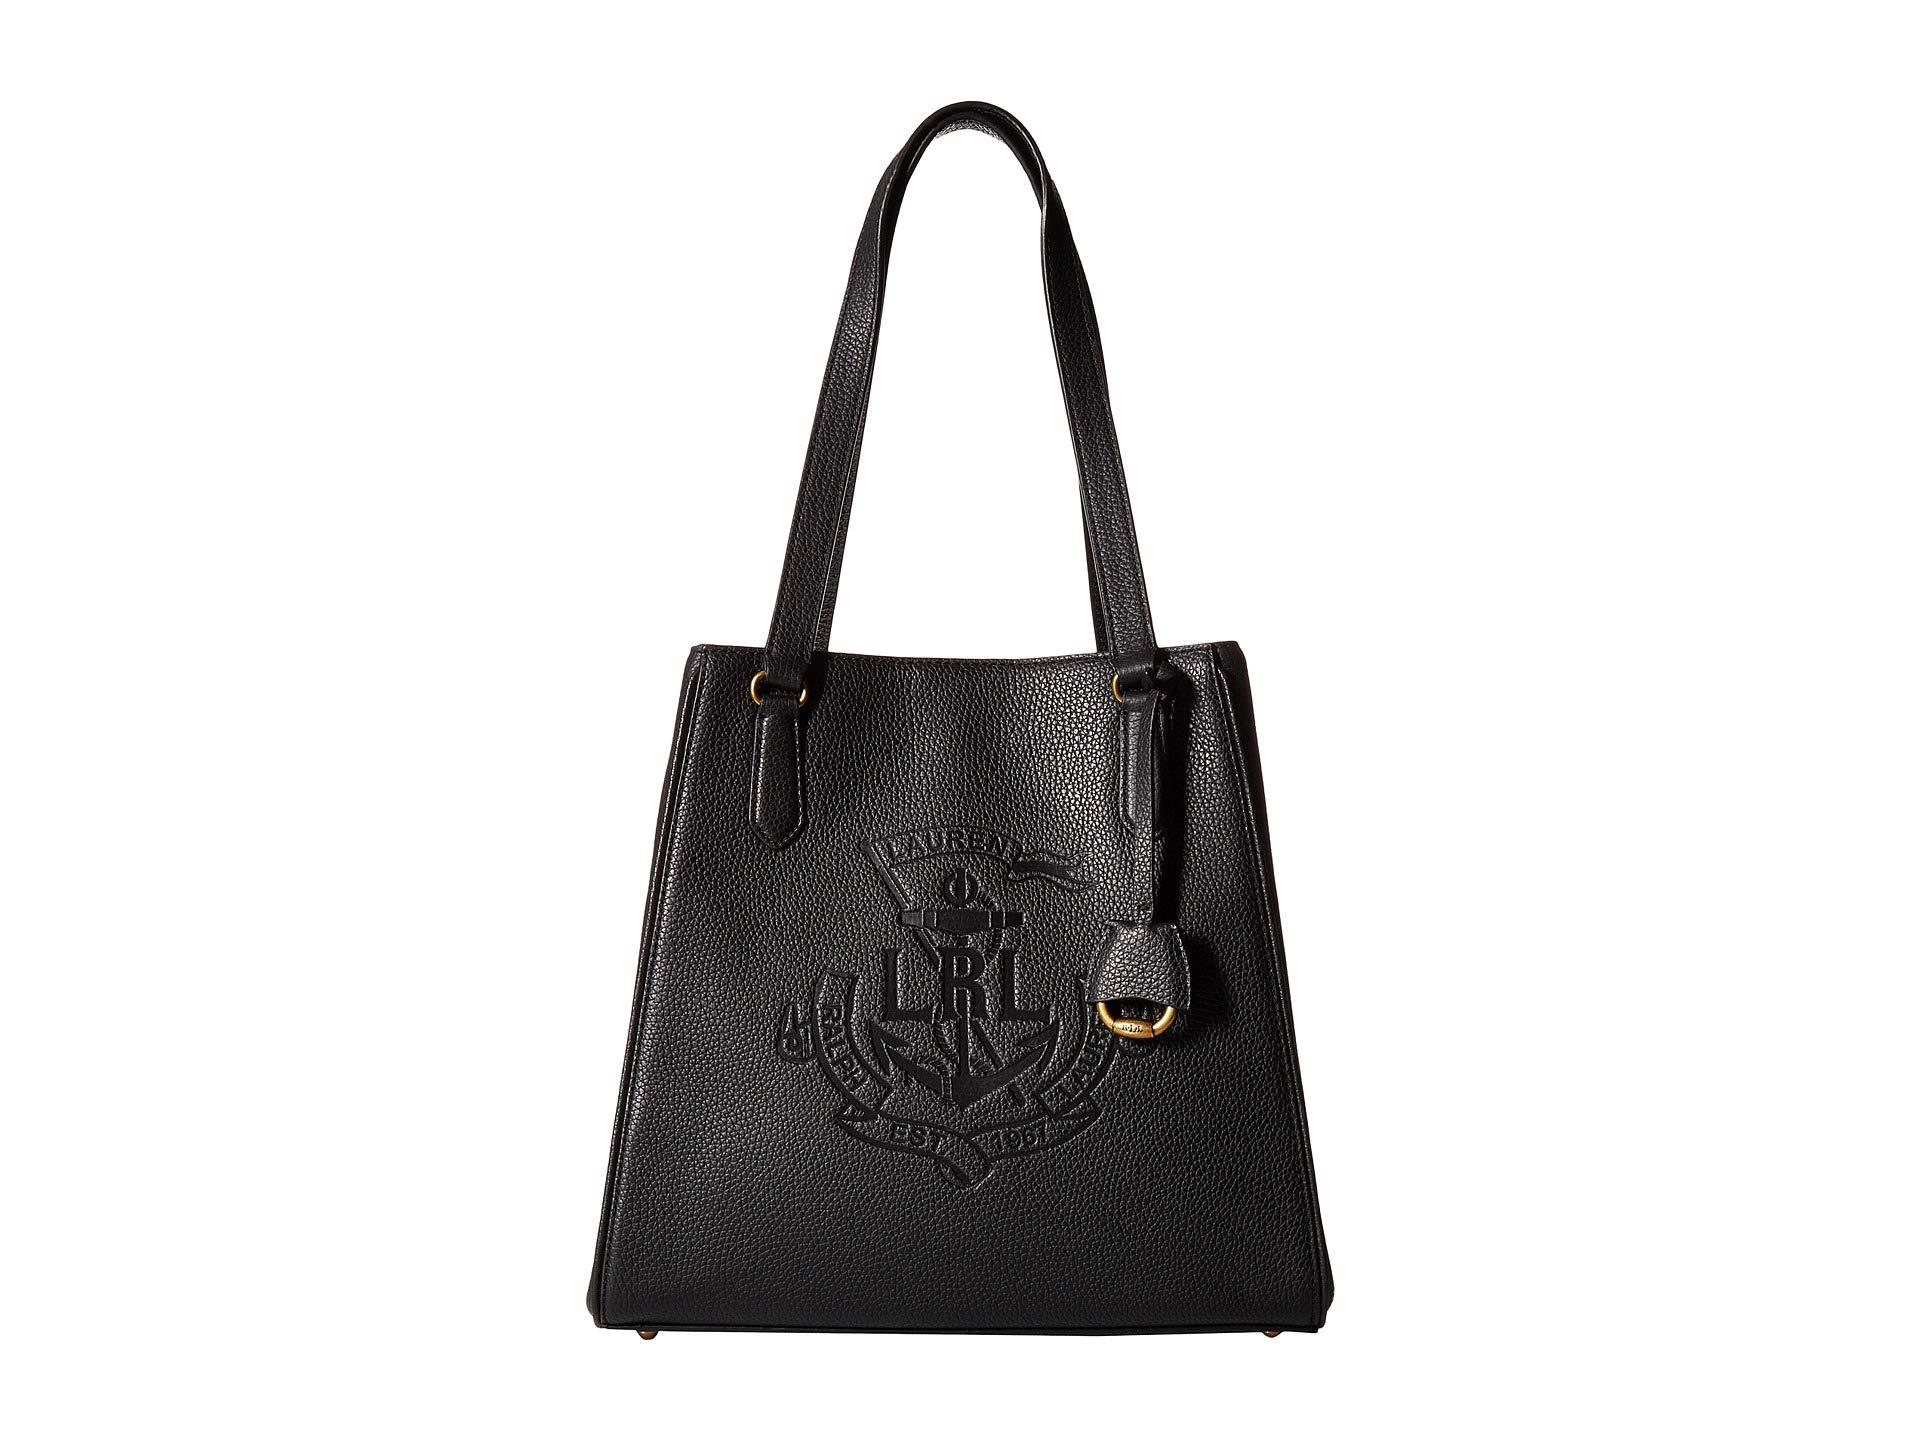 4877823fc32f Lyst - Lauren by Ralph Lauren Huntley Tote in Black